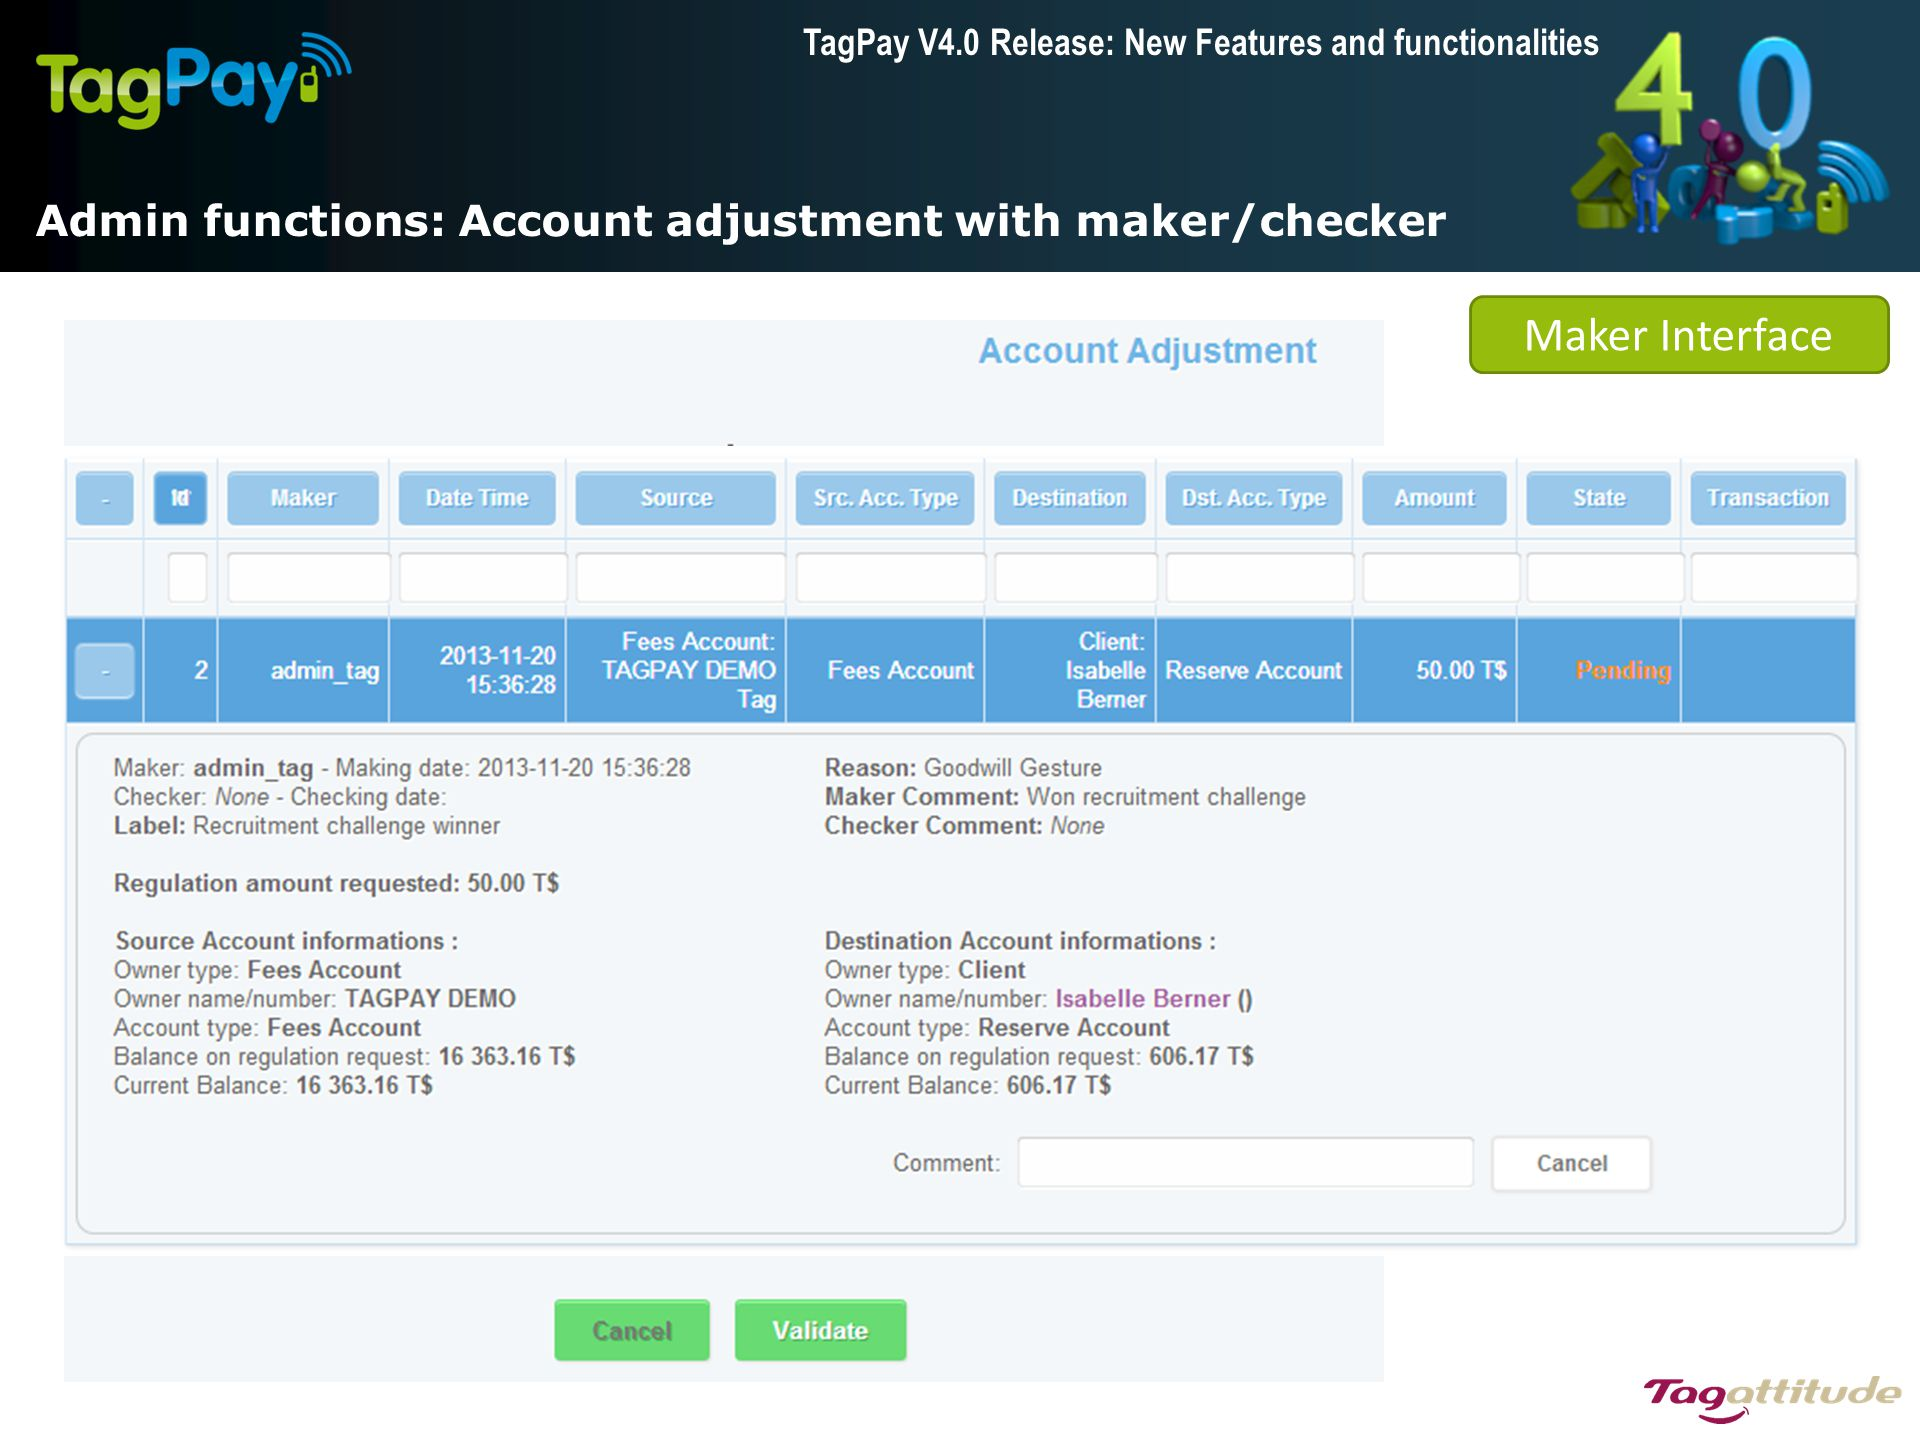 Admin functions: Account adjustment with maker/checker